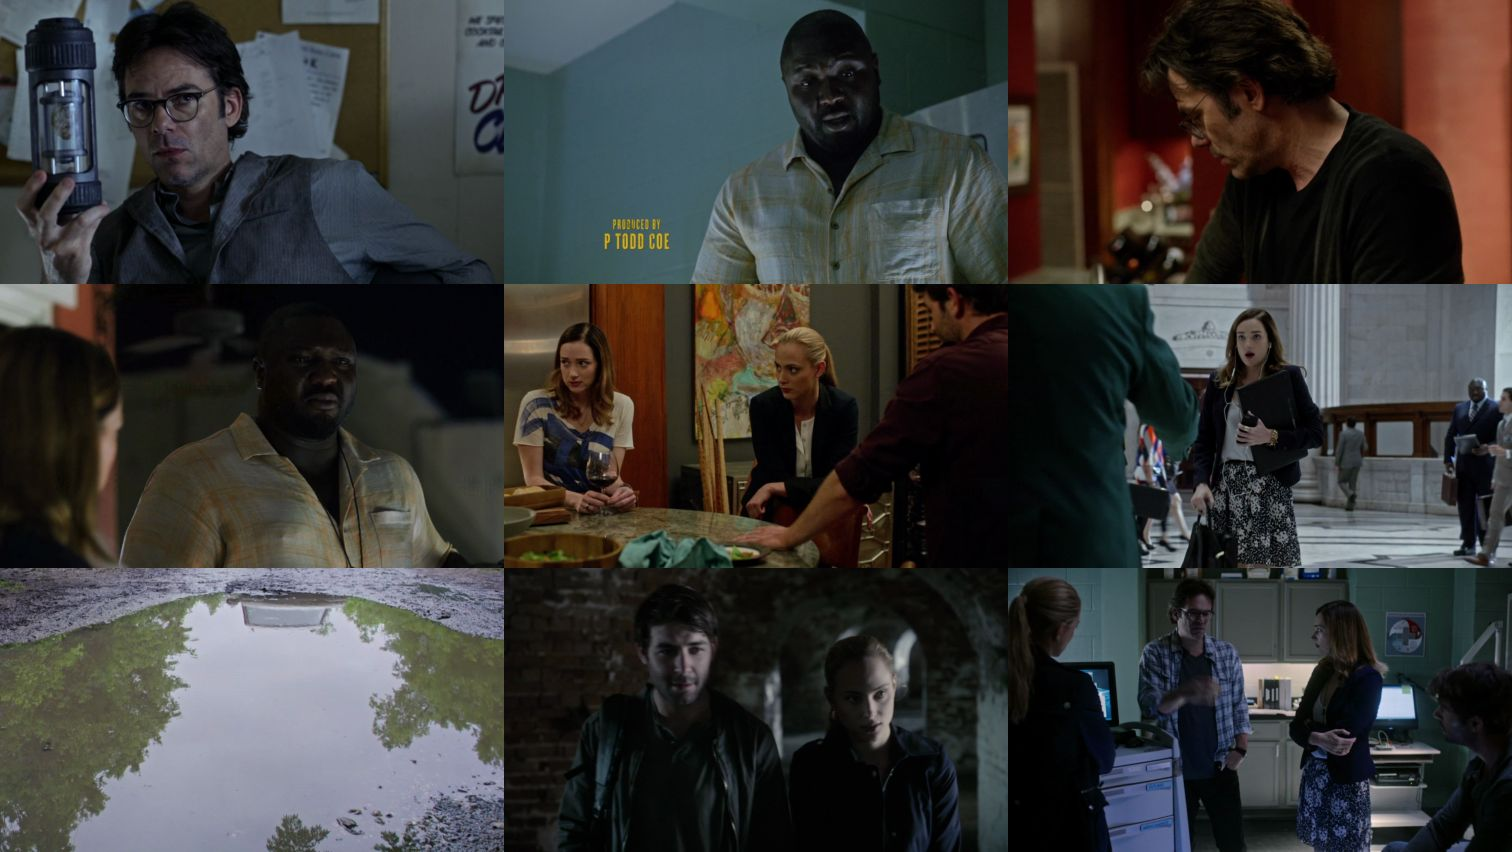 Zoo S01E07  HDTV X264 [MP4+ MKV 720P]